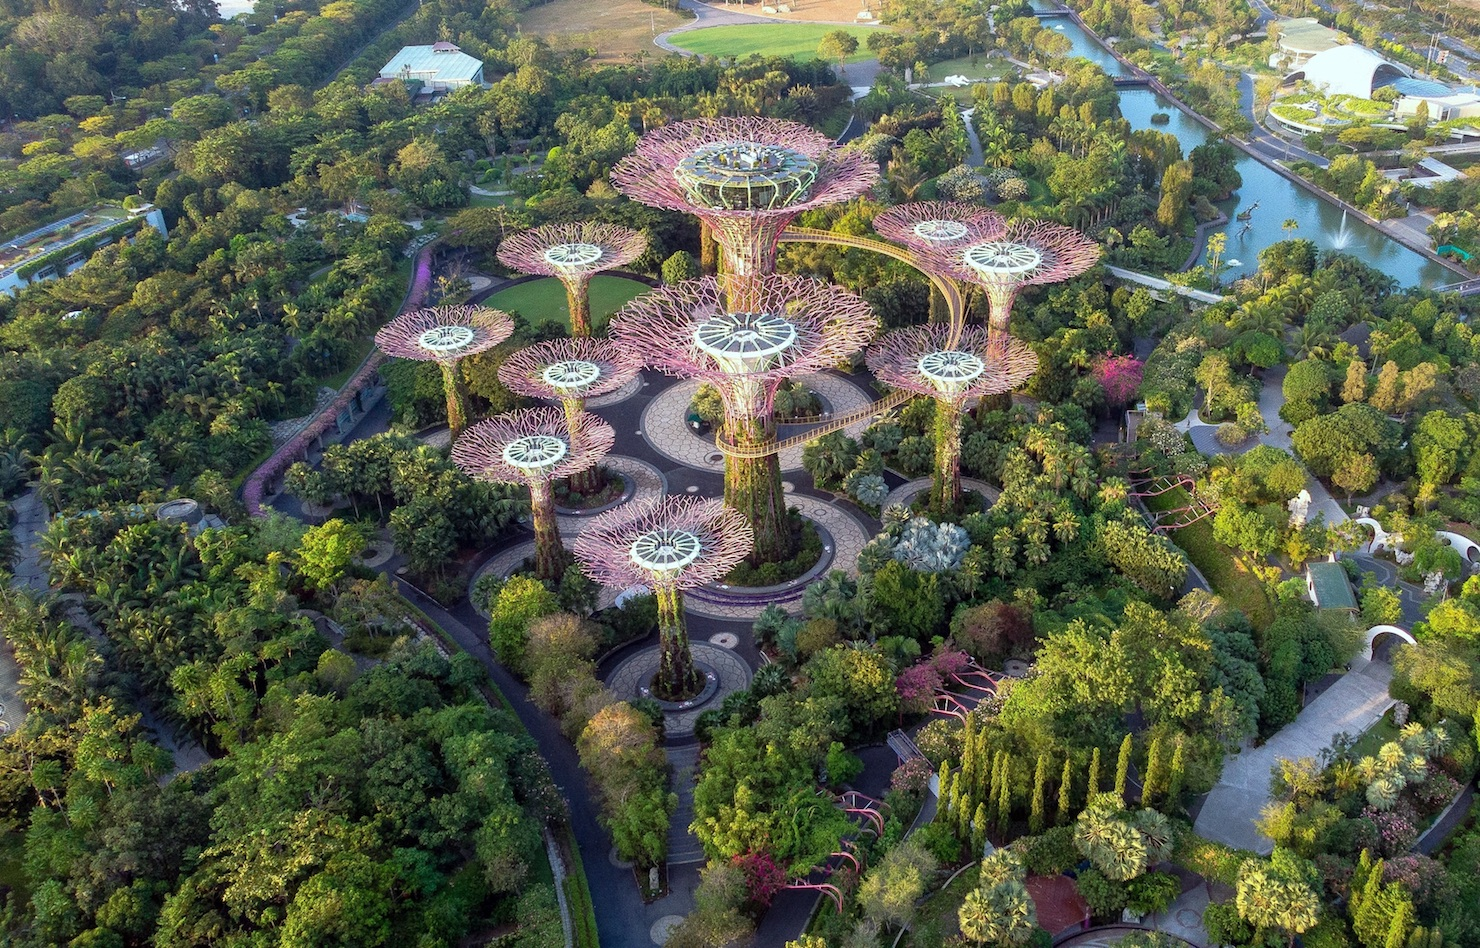 https://uluxeimages.uniqluxe.com/2020/10/gardens-by-the-bay-aerial-view-supertrees-singapore-luxury-travel-uniq-luxe.jpg